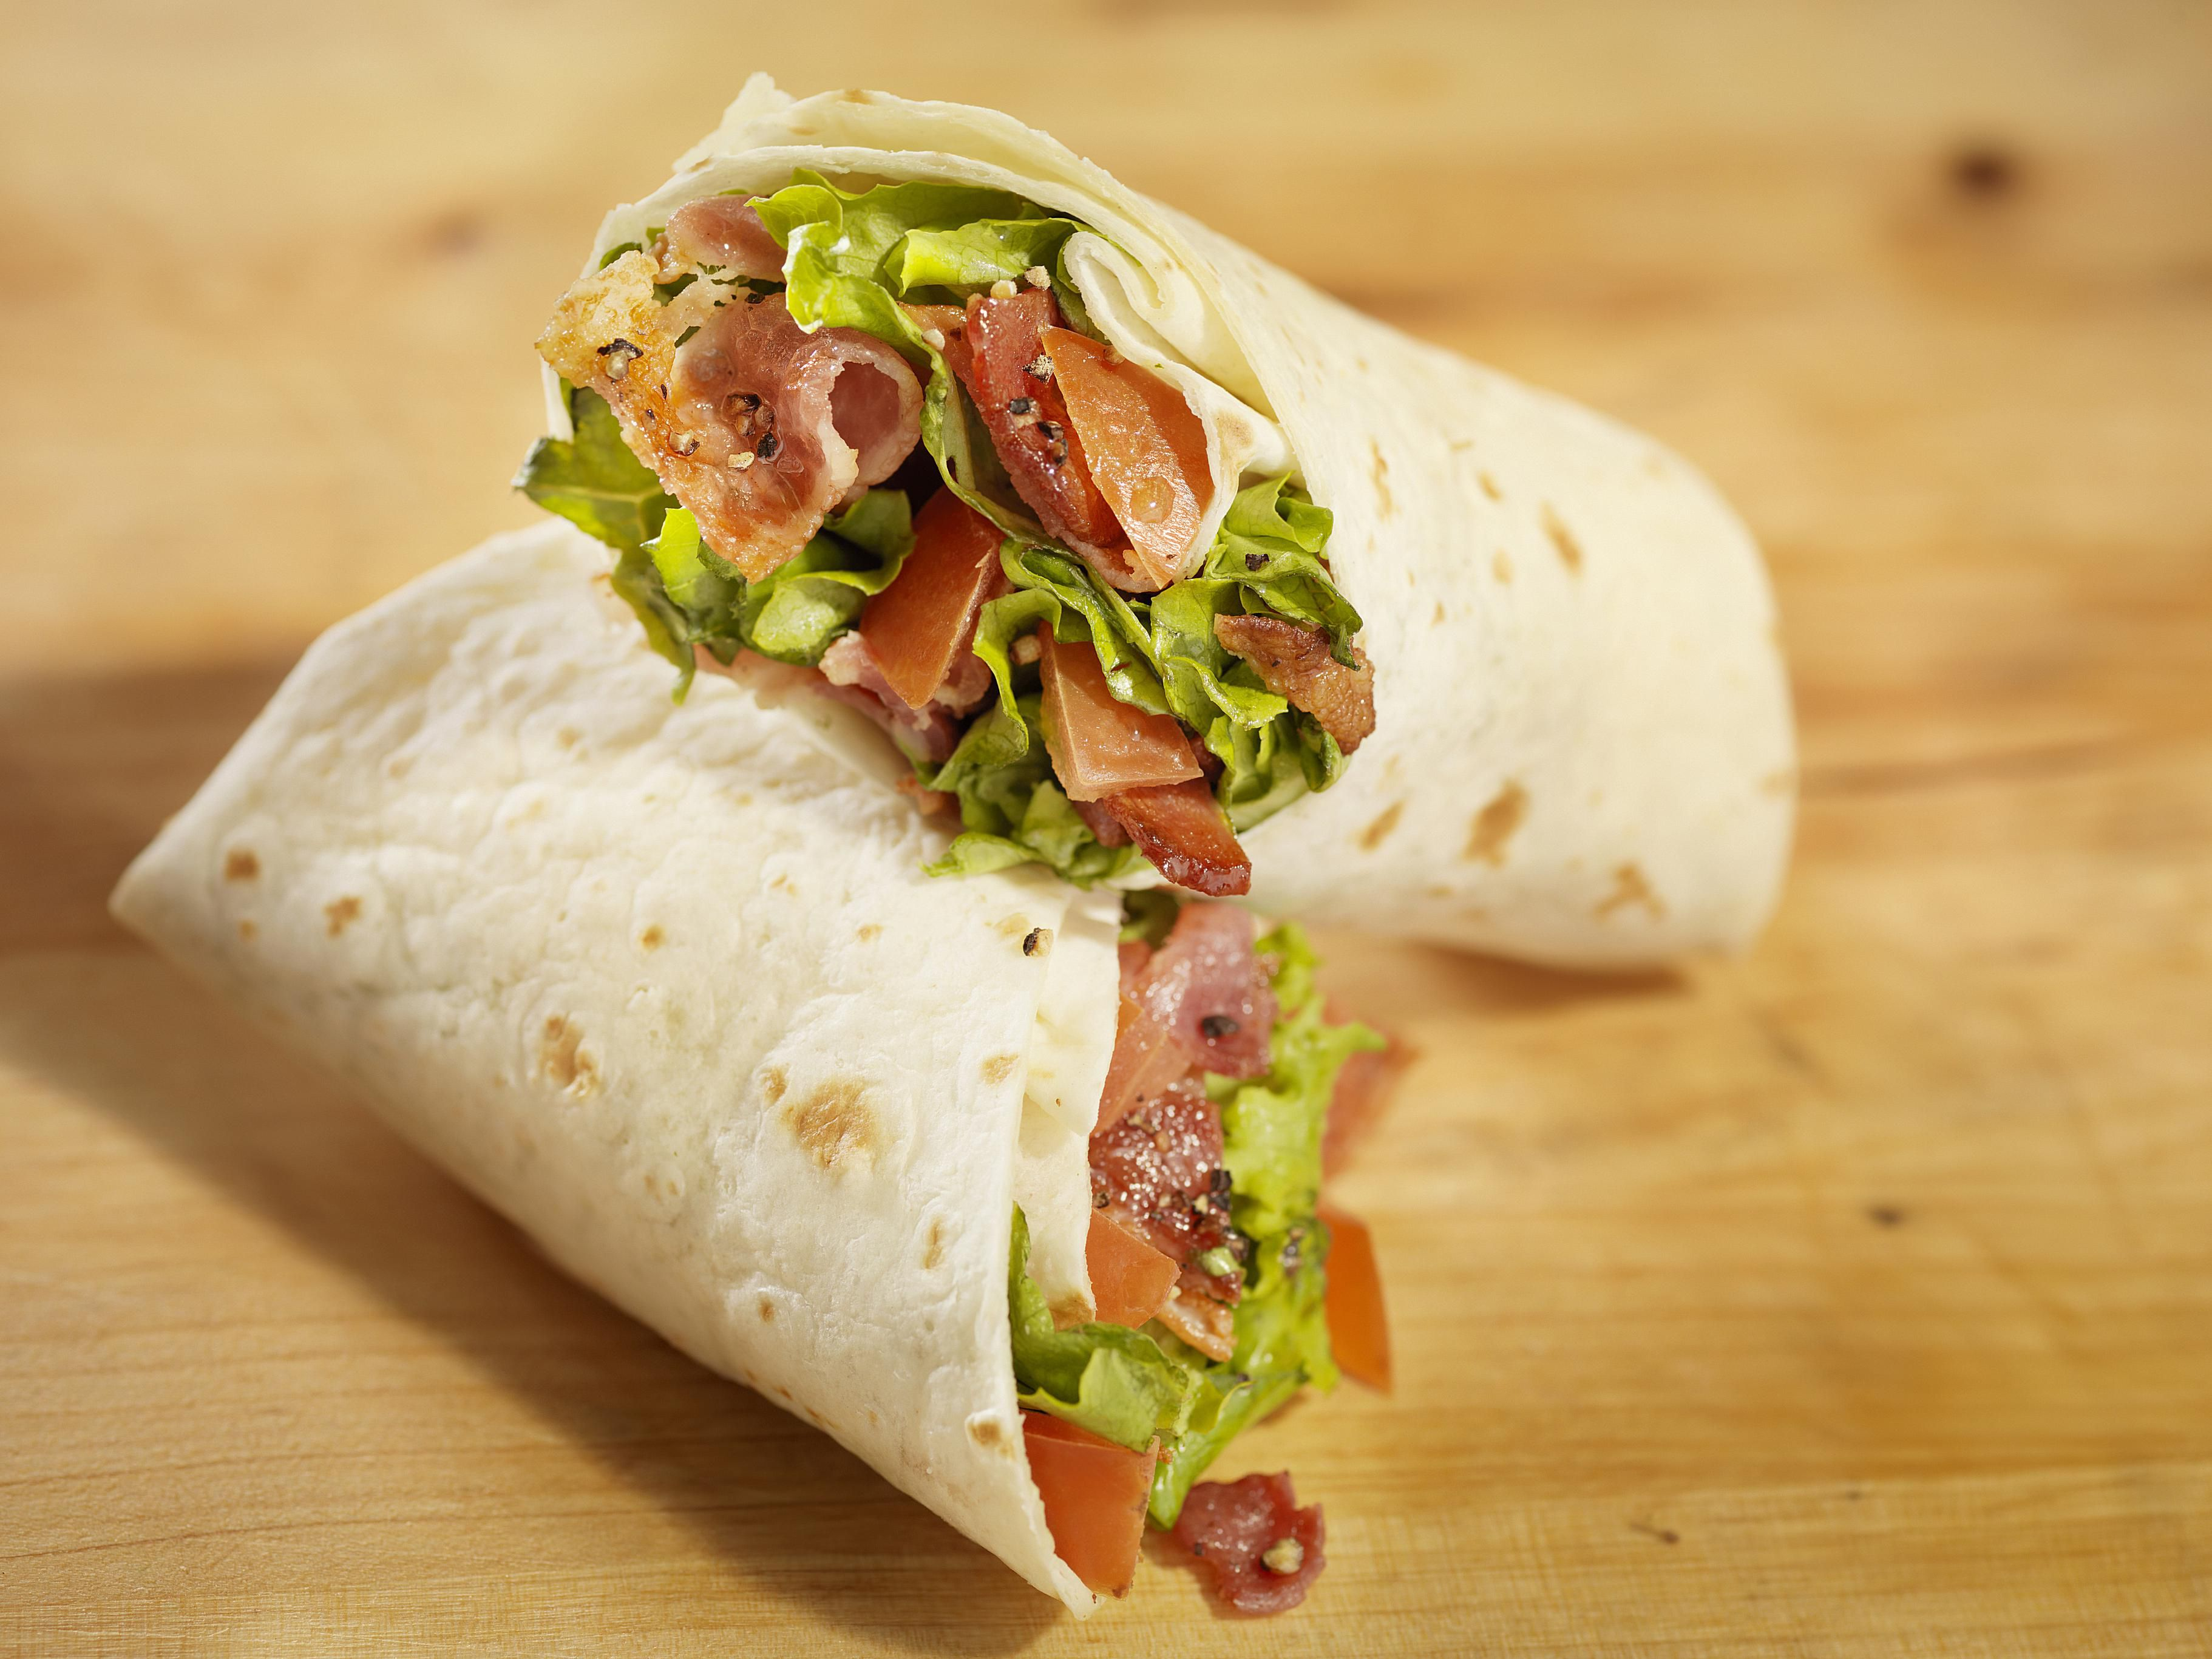 BLT Wrap Sandwiches Recipe Is Easy And Delicious